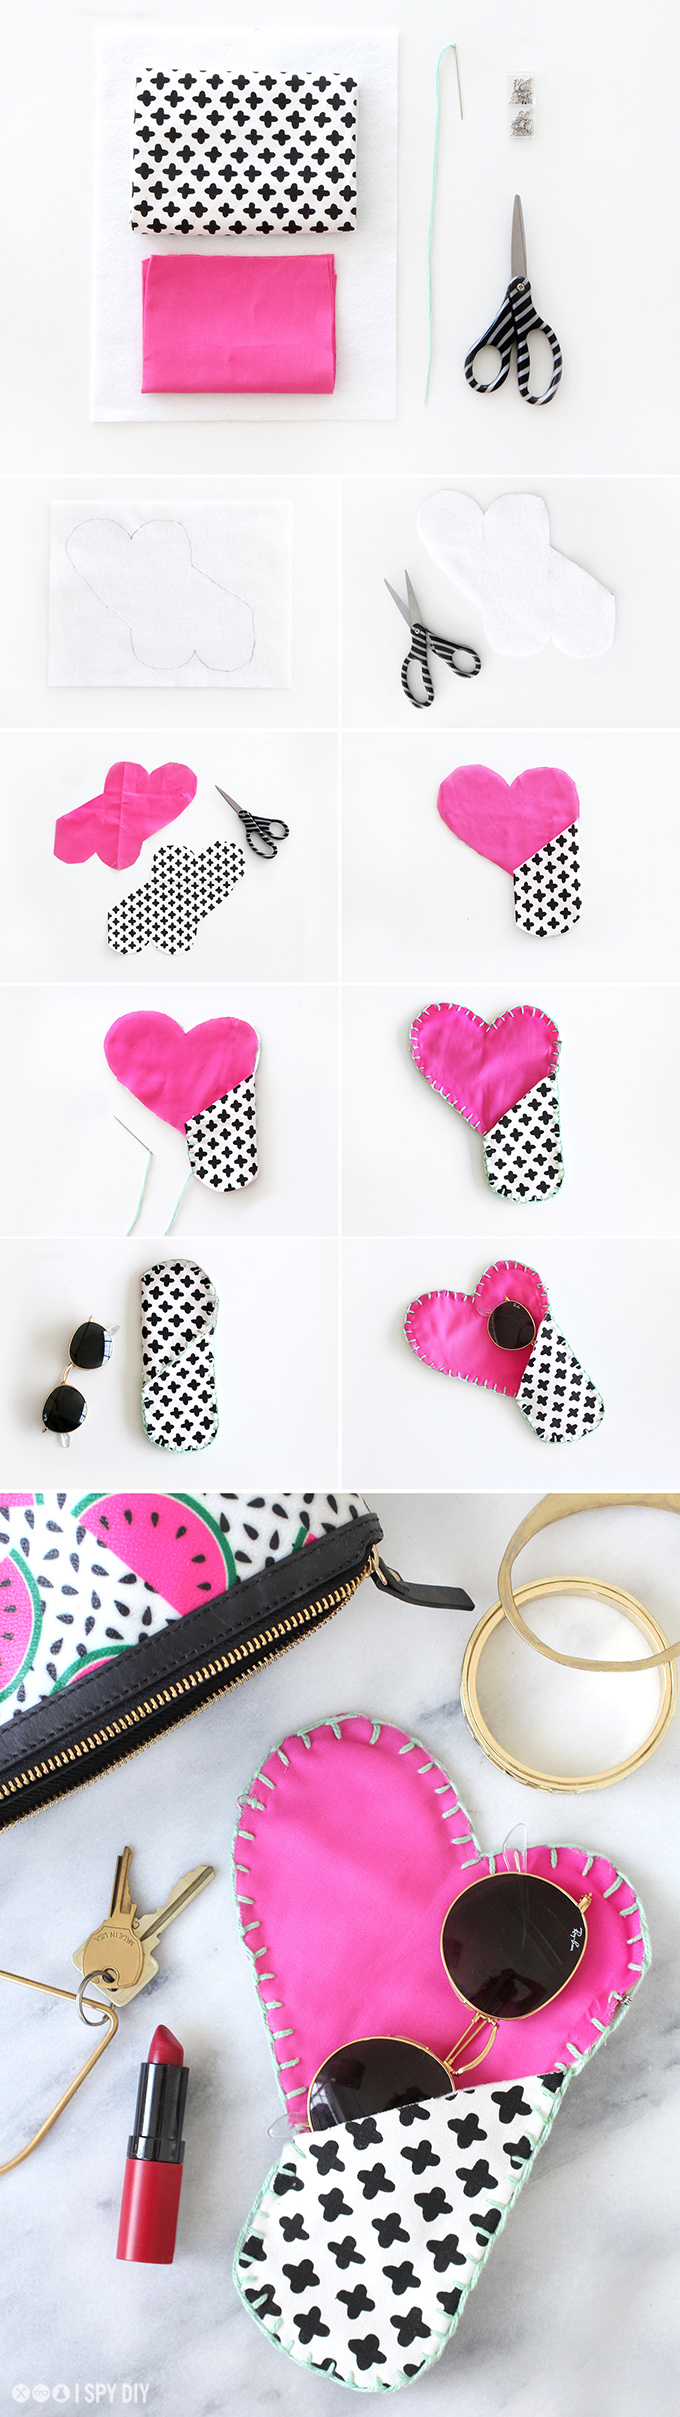 ispydiy_heartglassescase_steps